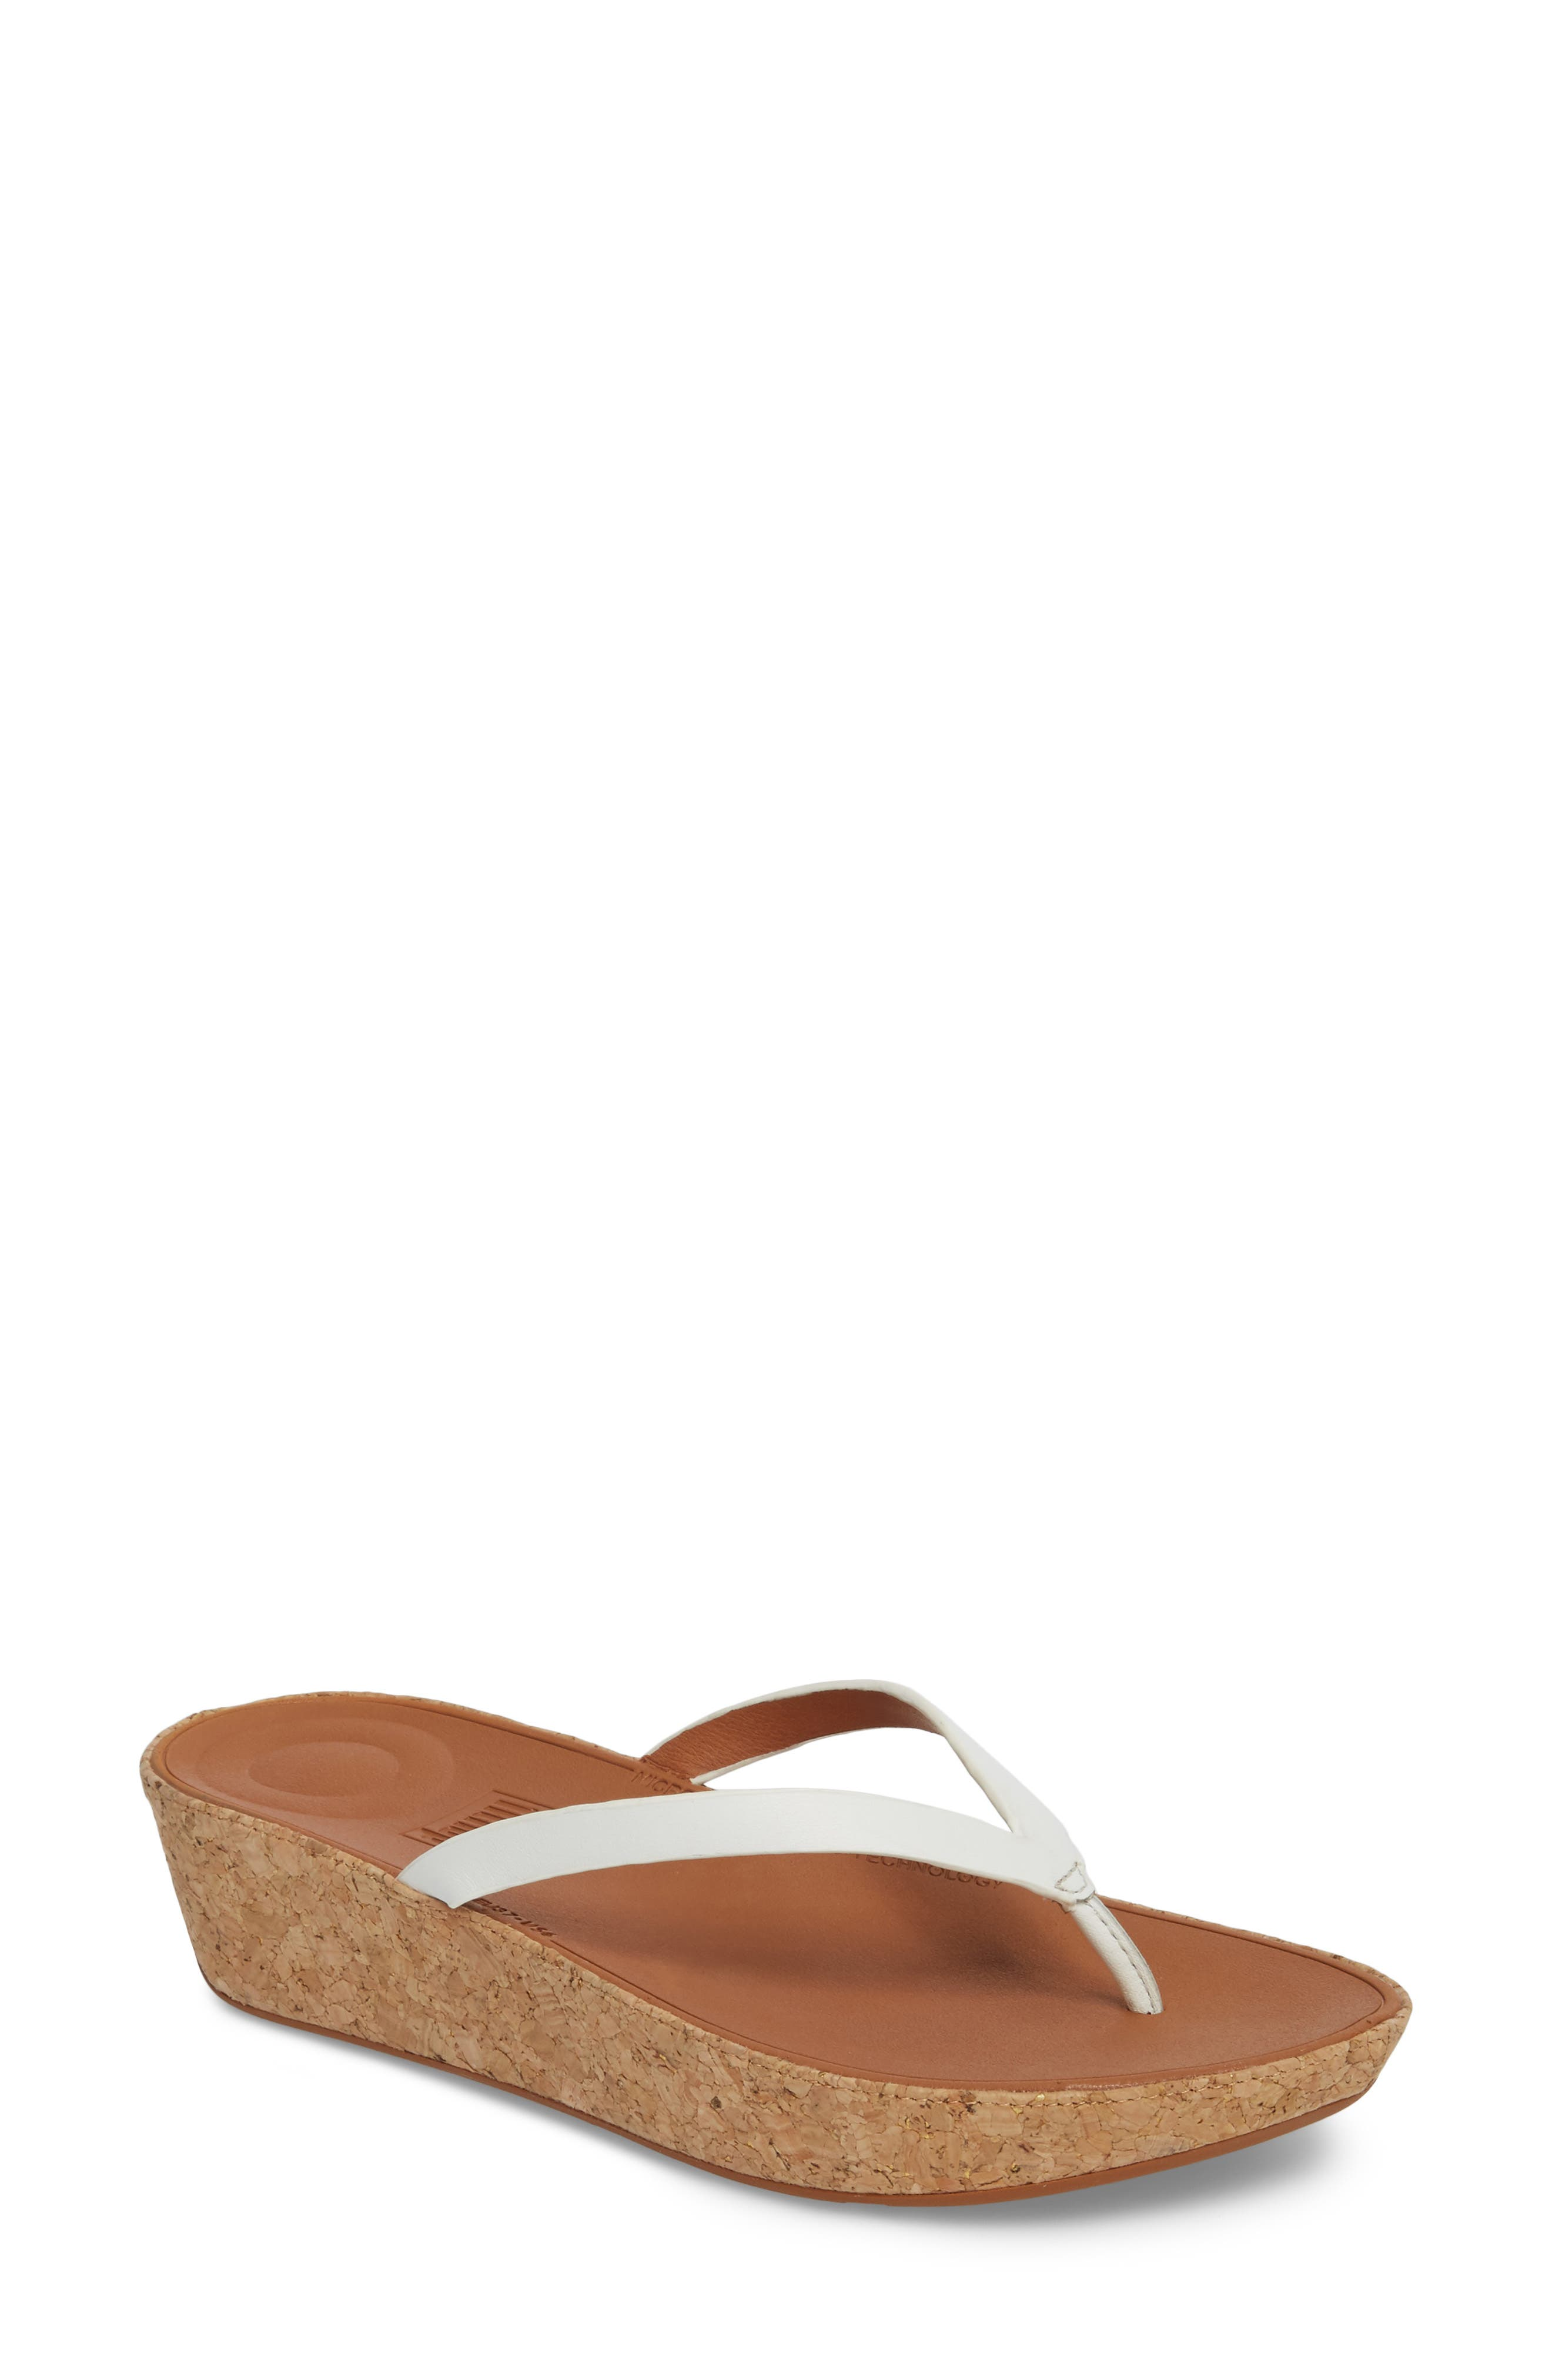 Linny Wedge Flip Flop,                         Main,                         color, Urban White